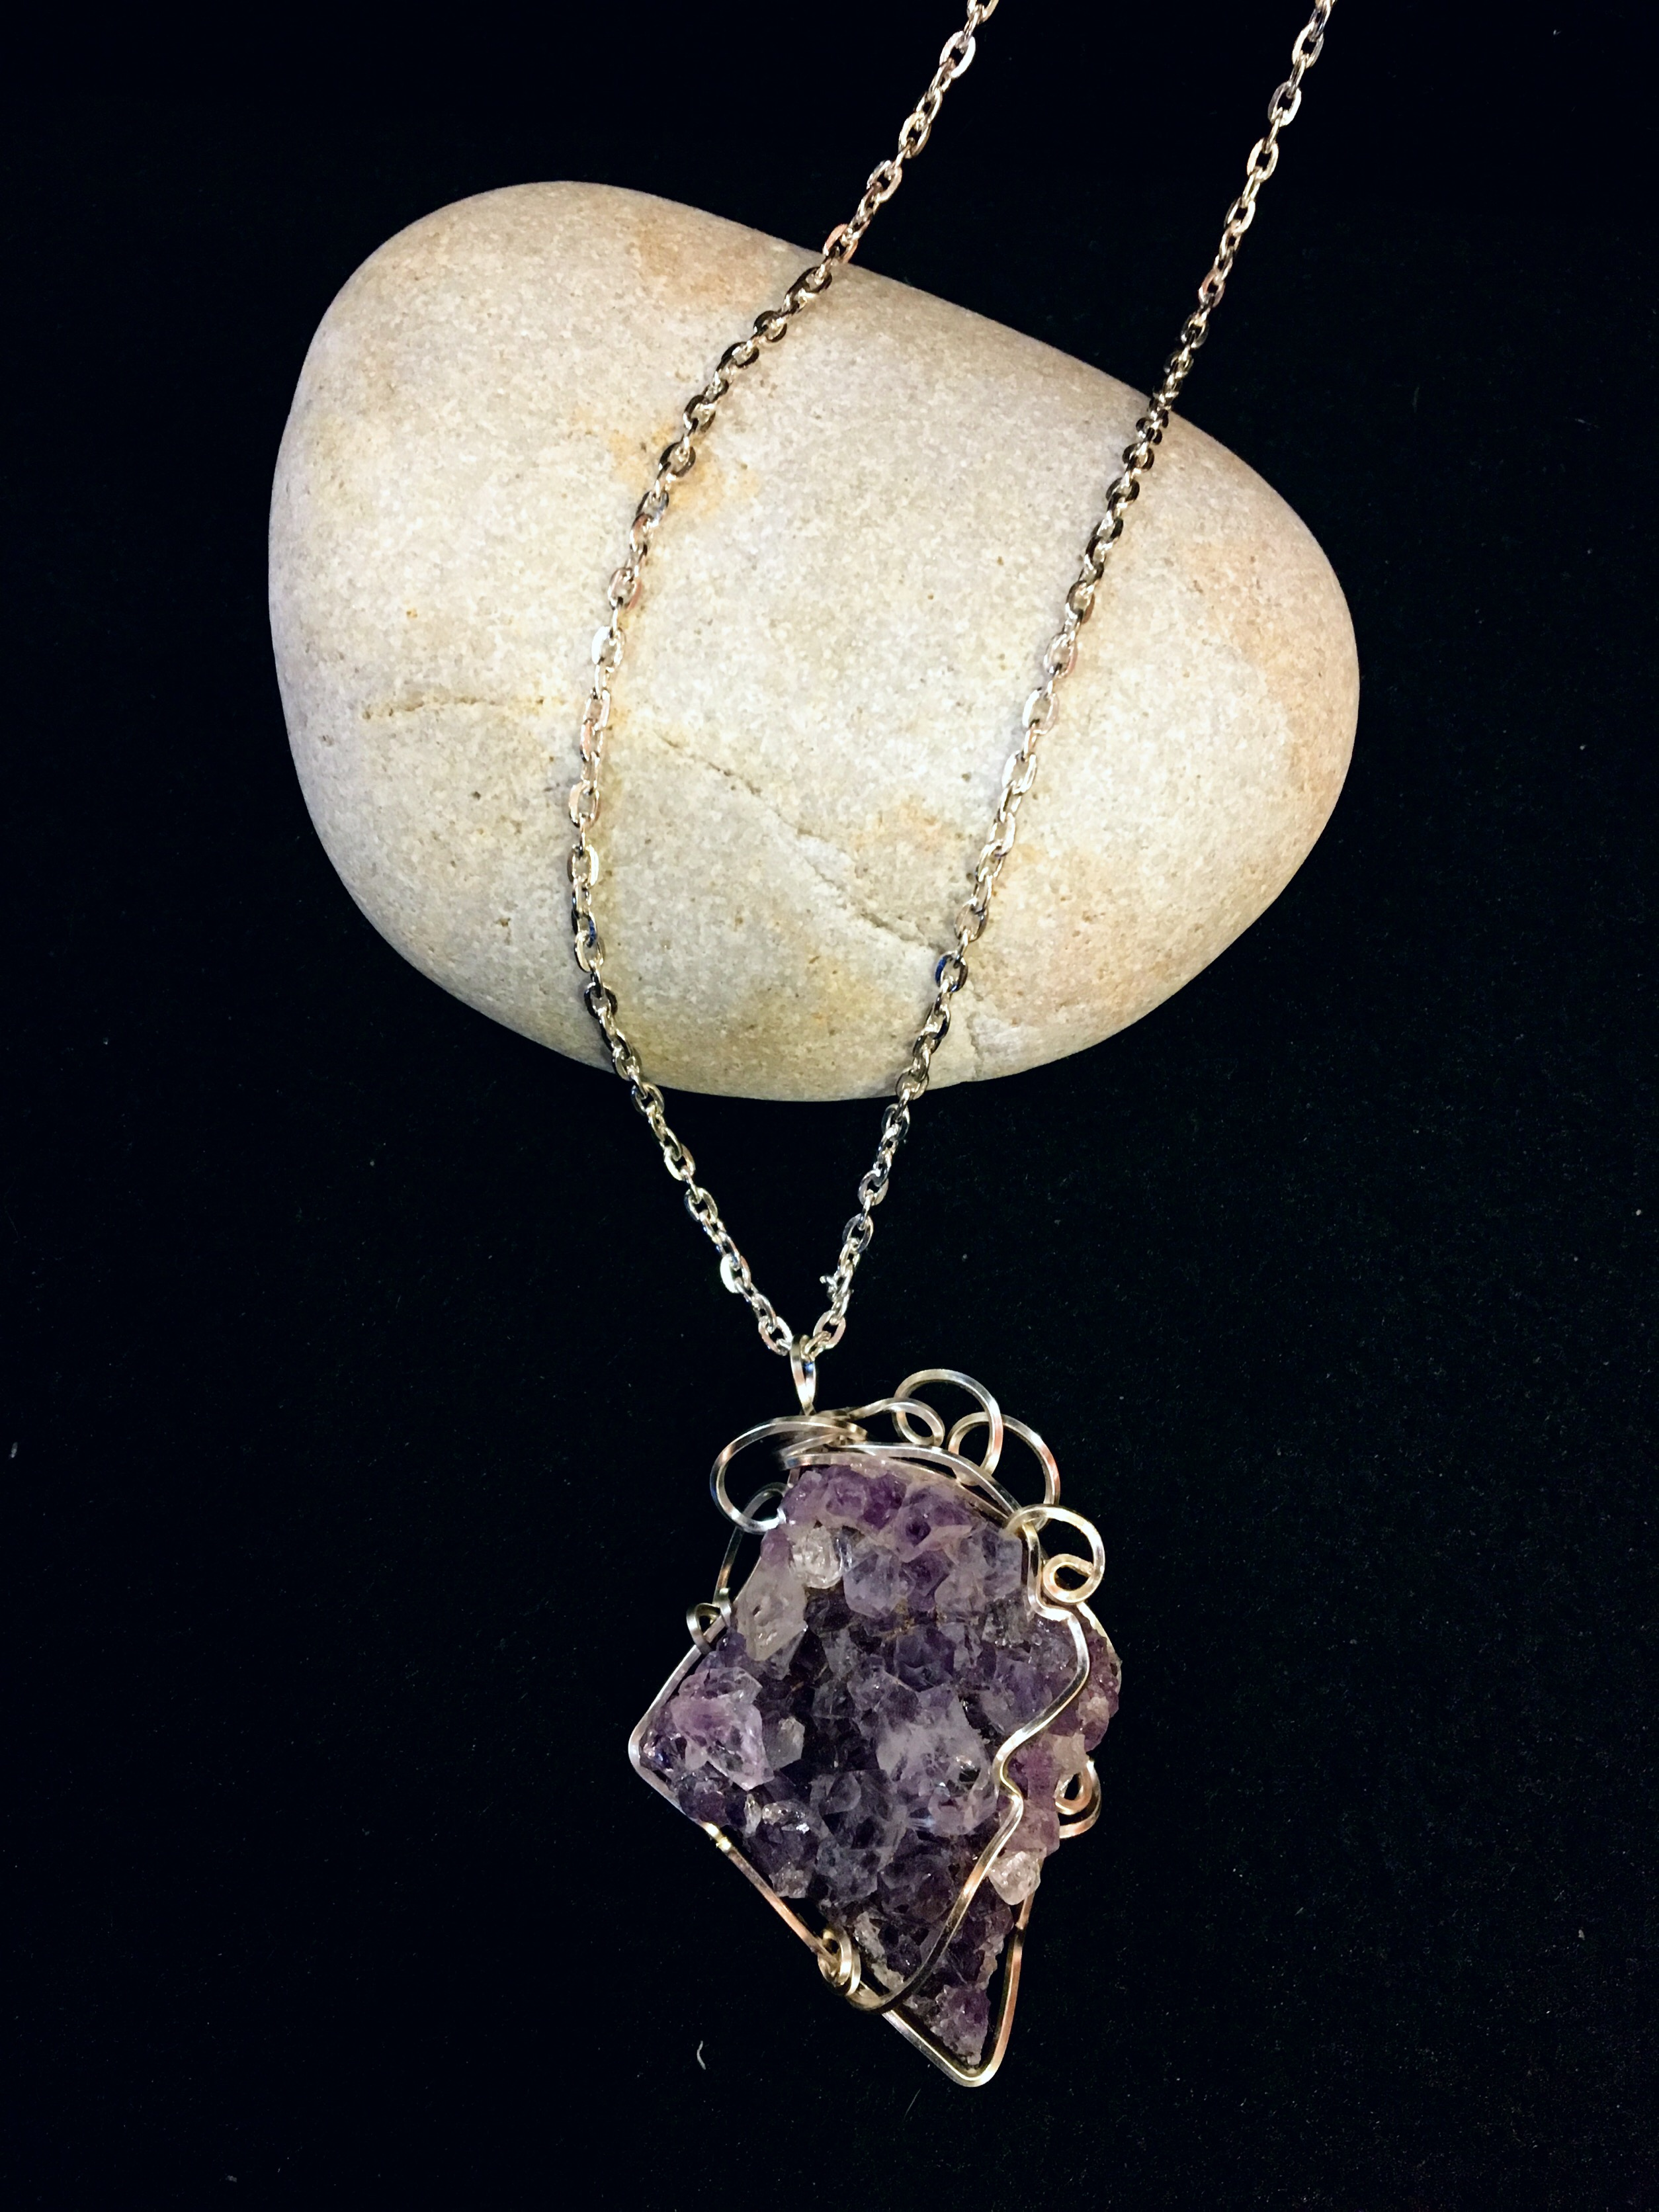 Qhresnna Quartz Necklace - Amethyst - Silver Plated and Sterling Chain